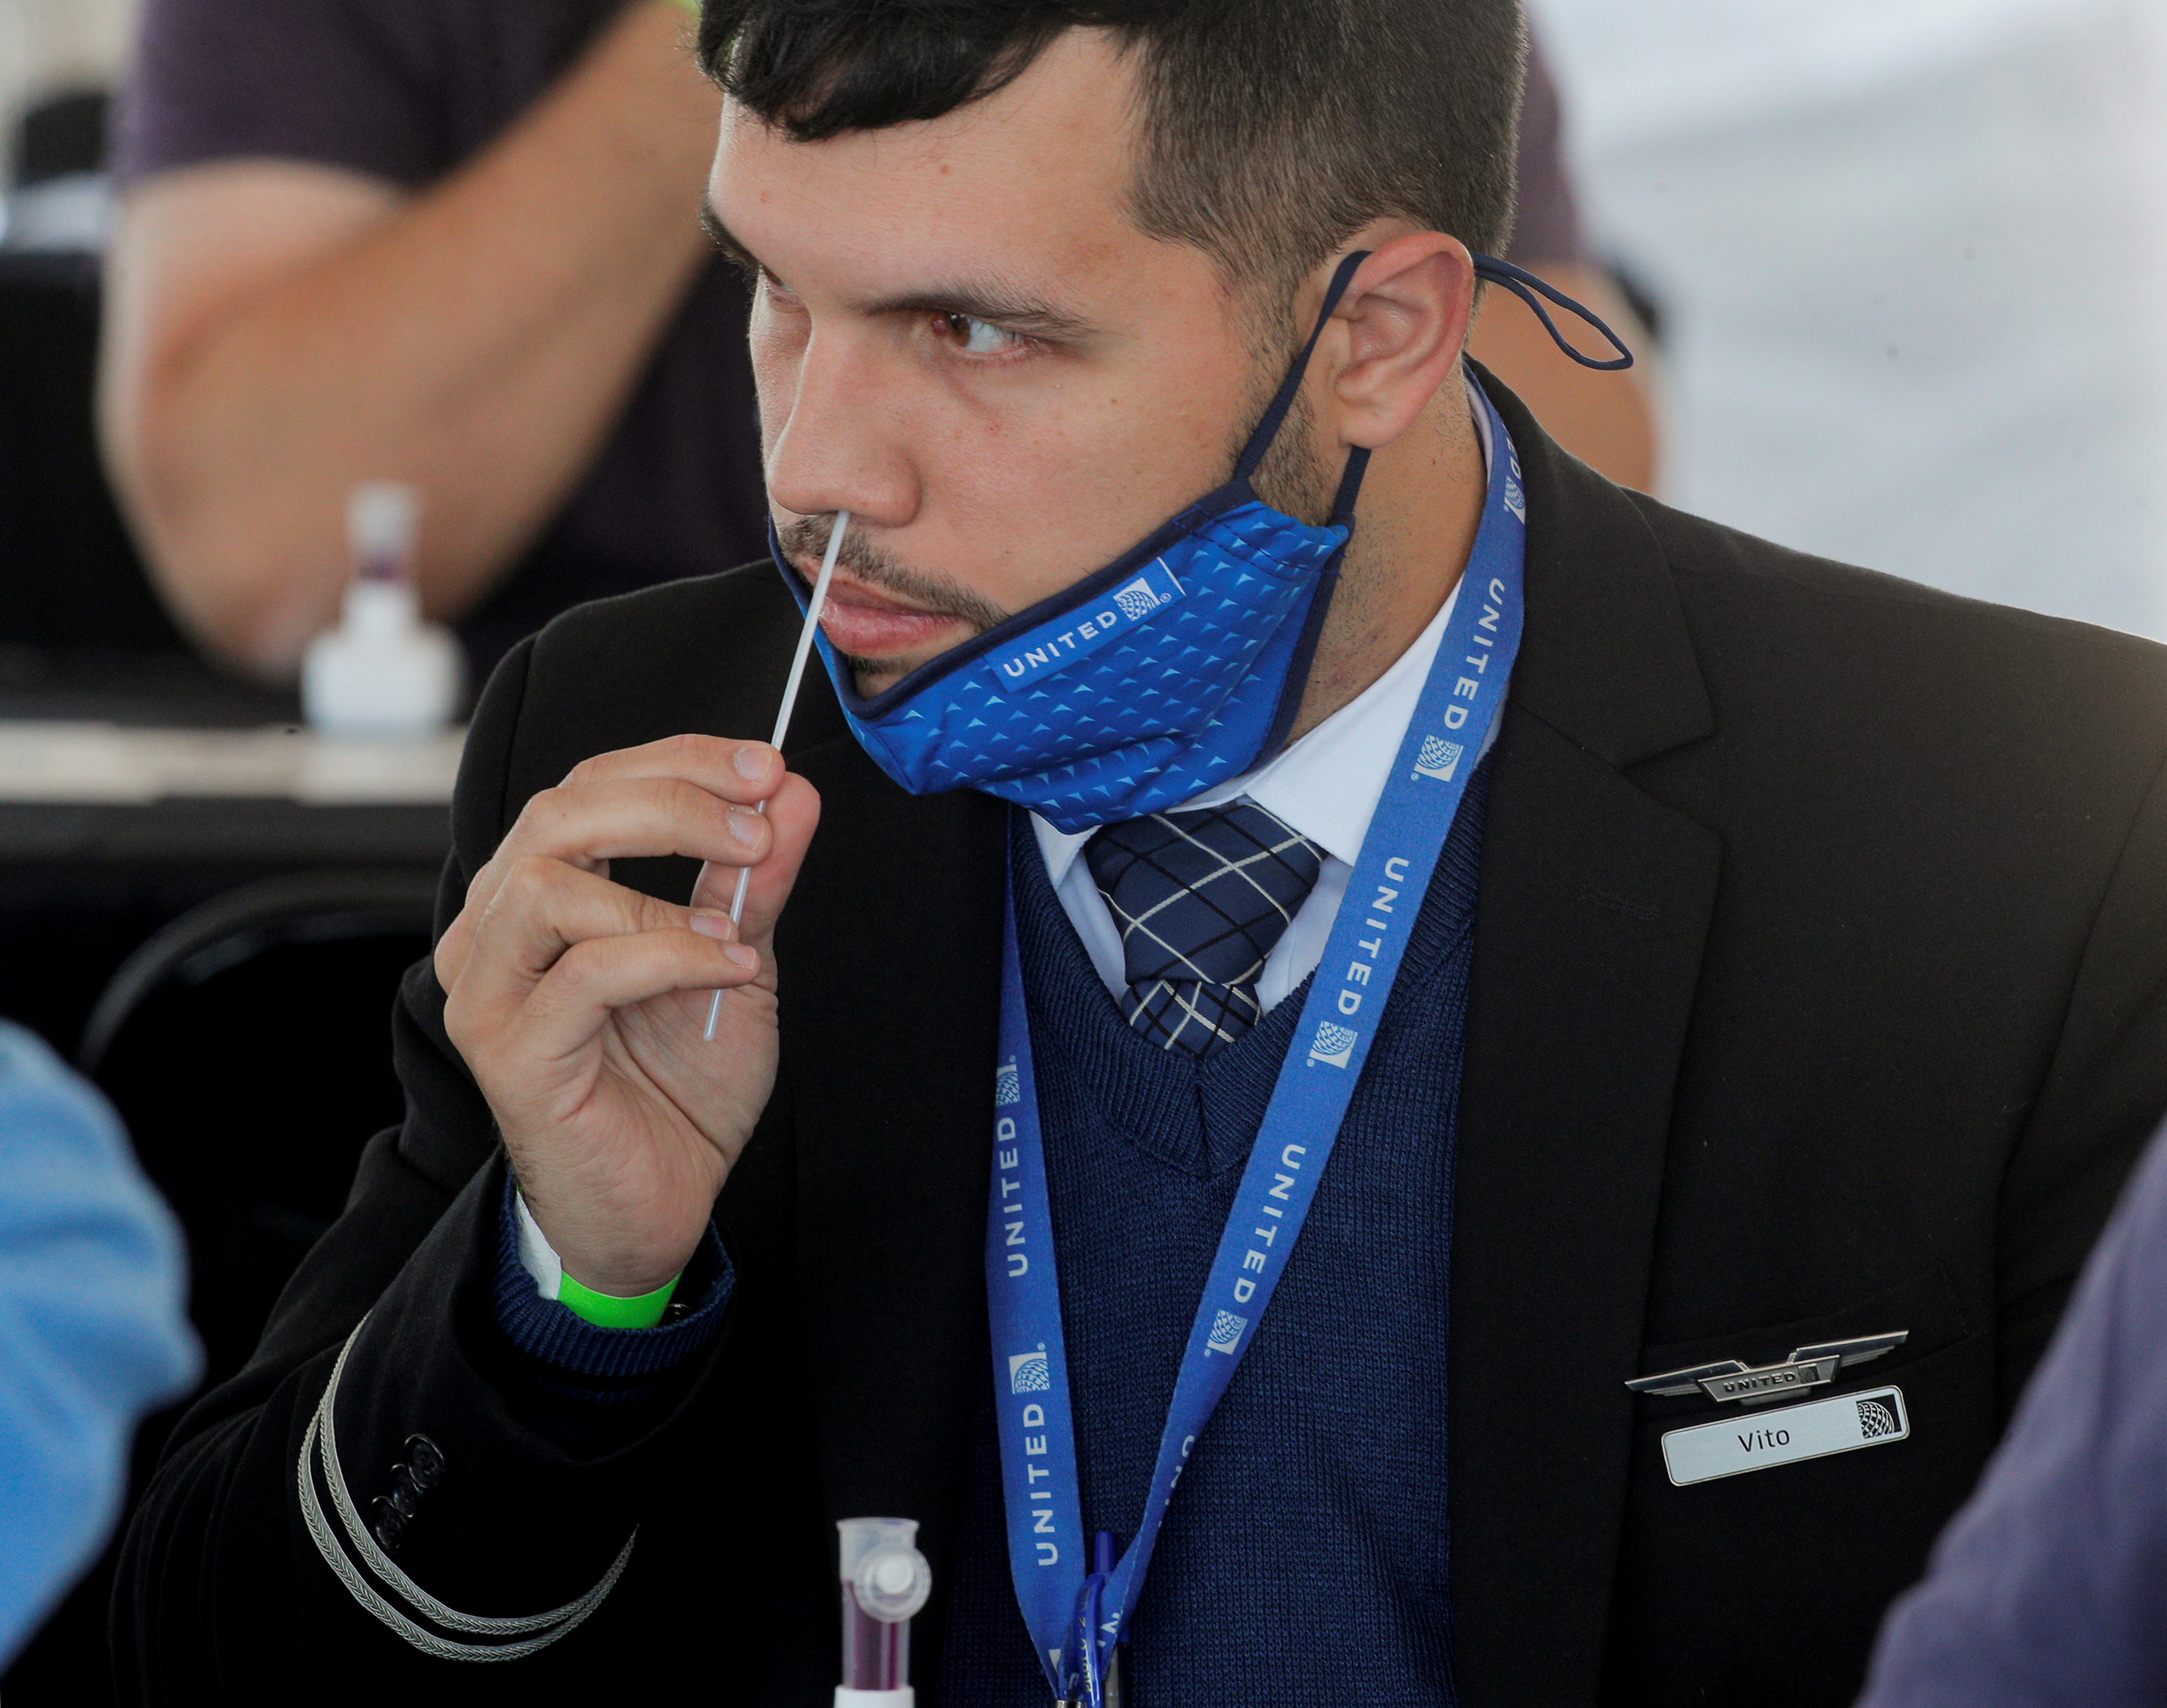 A United Airlines employee swabs his nose for a coronavirus disease (COVID-19) testat MetLife Stadium in East Rutherford, New Jersey, U.S., May 6, 2021. REUTERS/Brendan McDermid